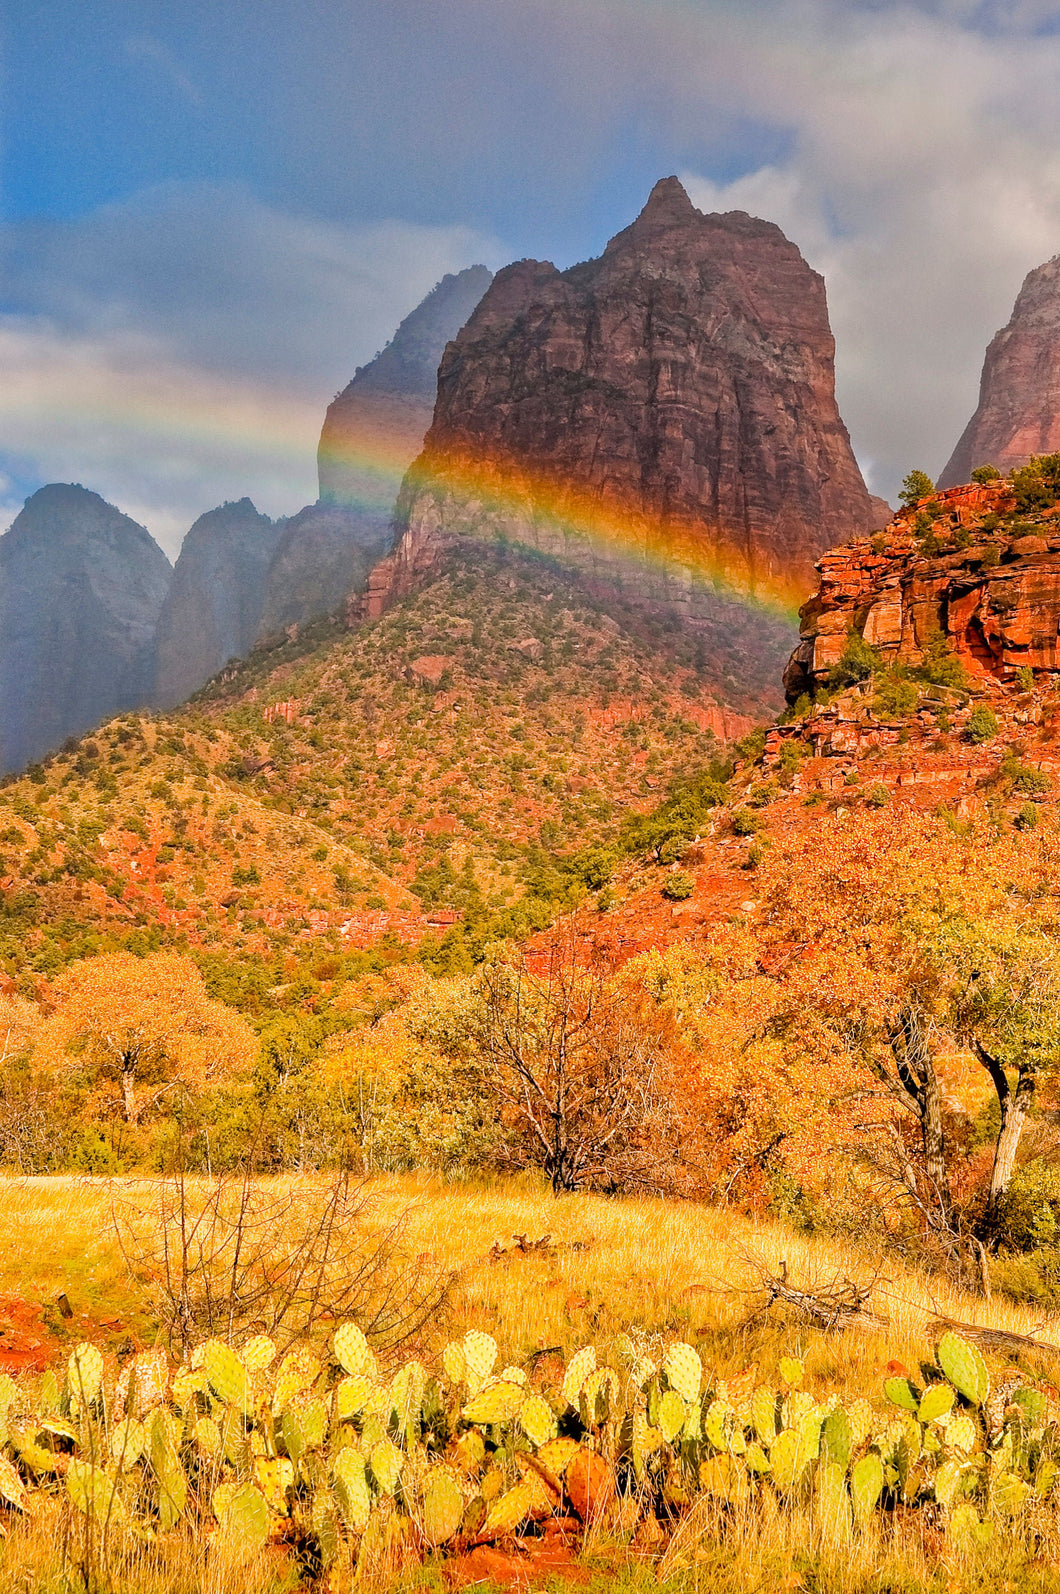 Rainbow Photography In Zion National Park Utah, Desert Art, South West Photography, Utah Photography, Desert Photography, Rainbow Art